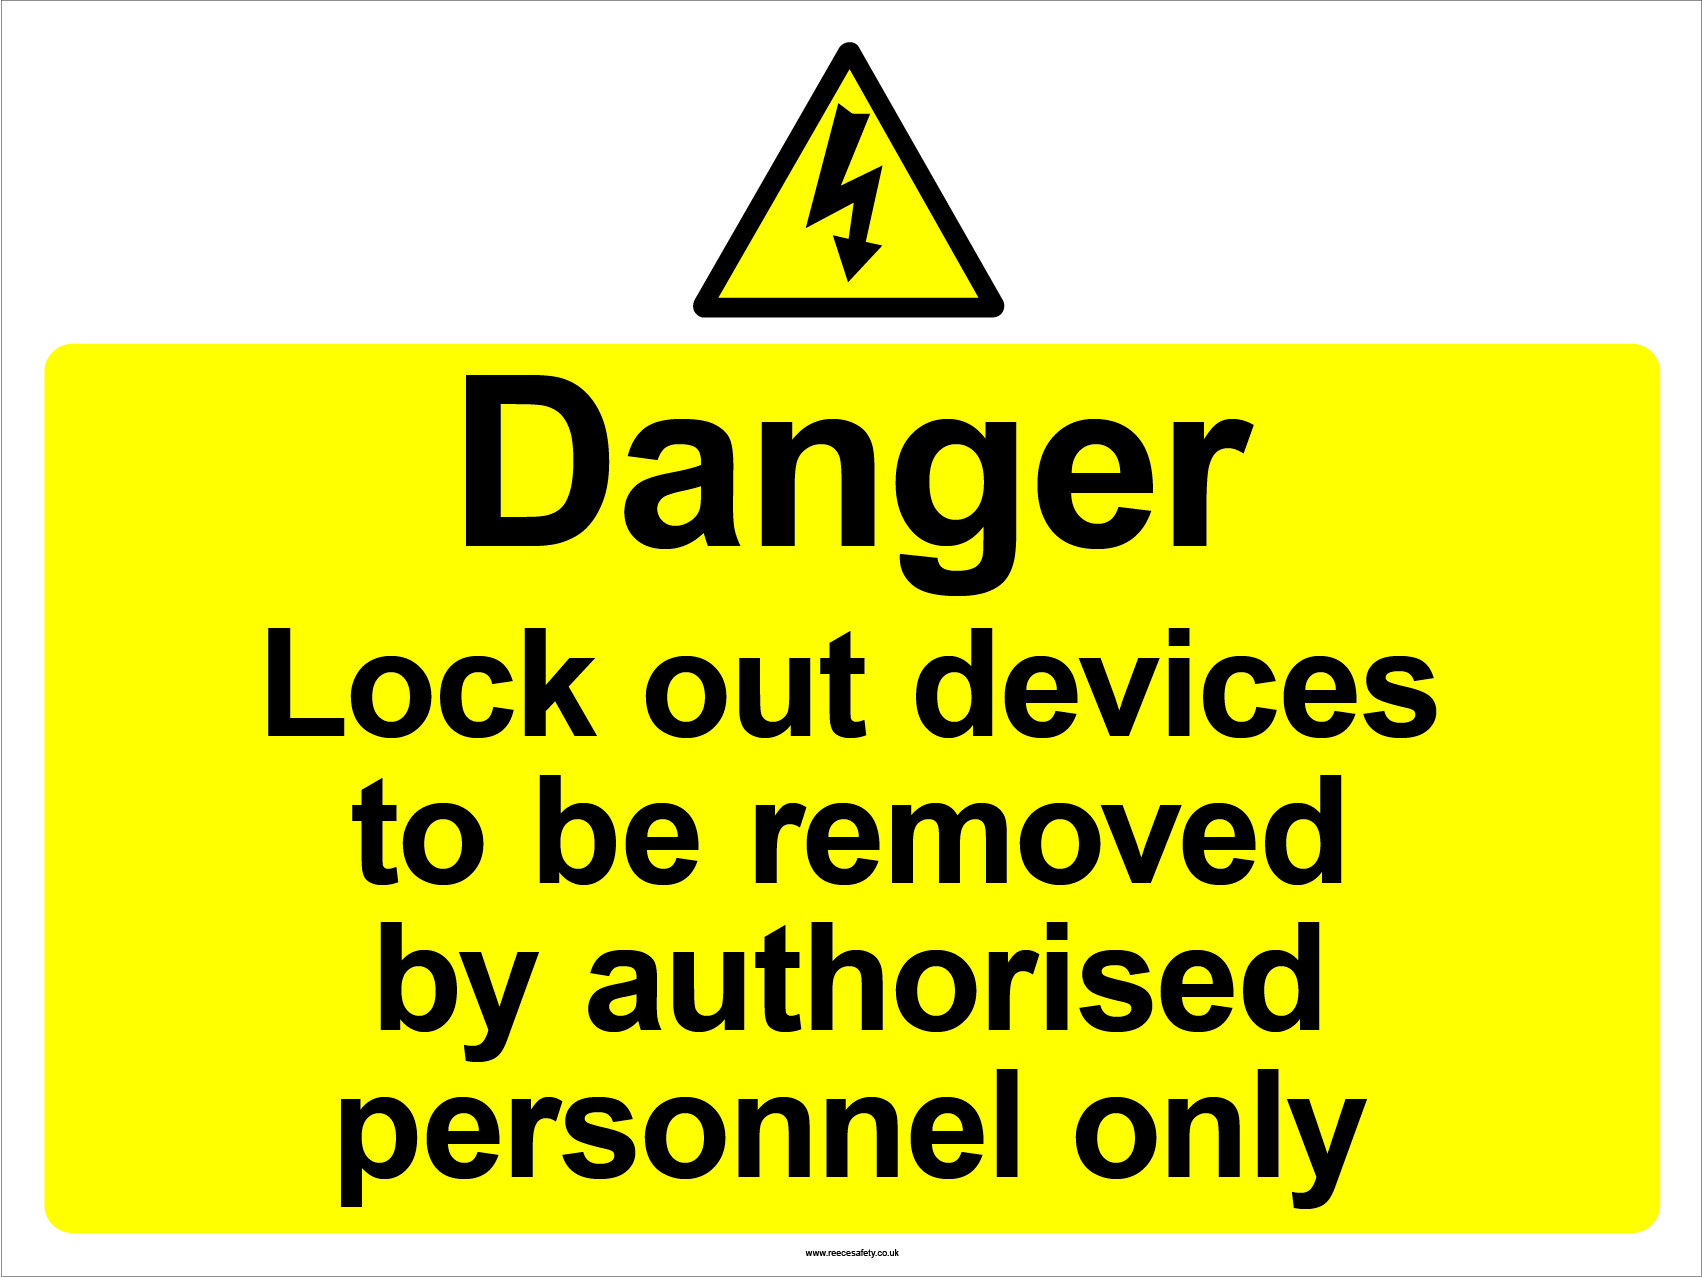 S/A Lockout Wall Sign 450x600mm Danger Lockout devices to